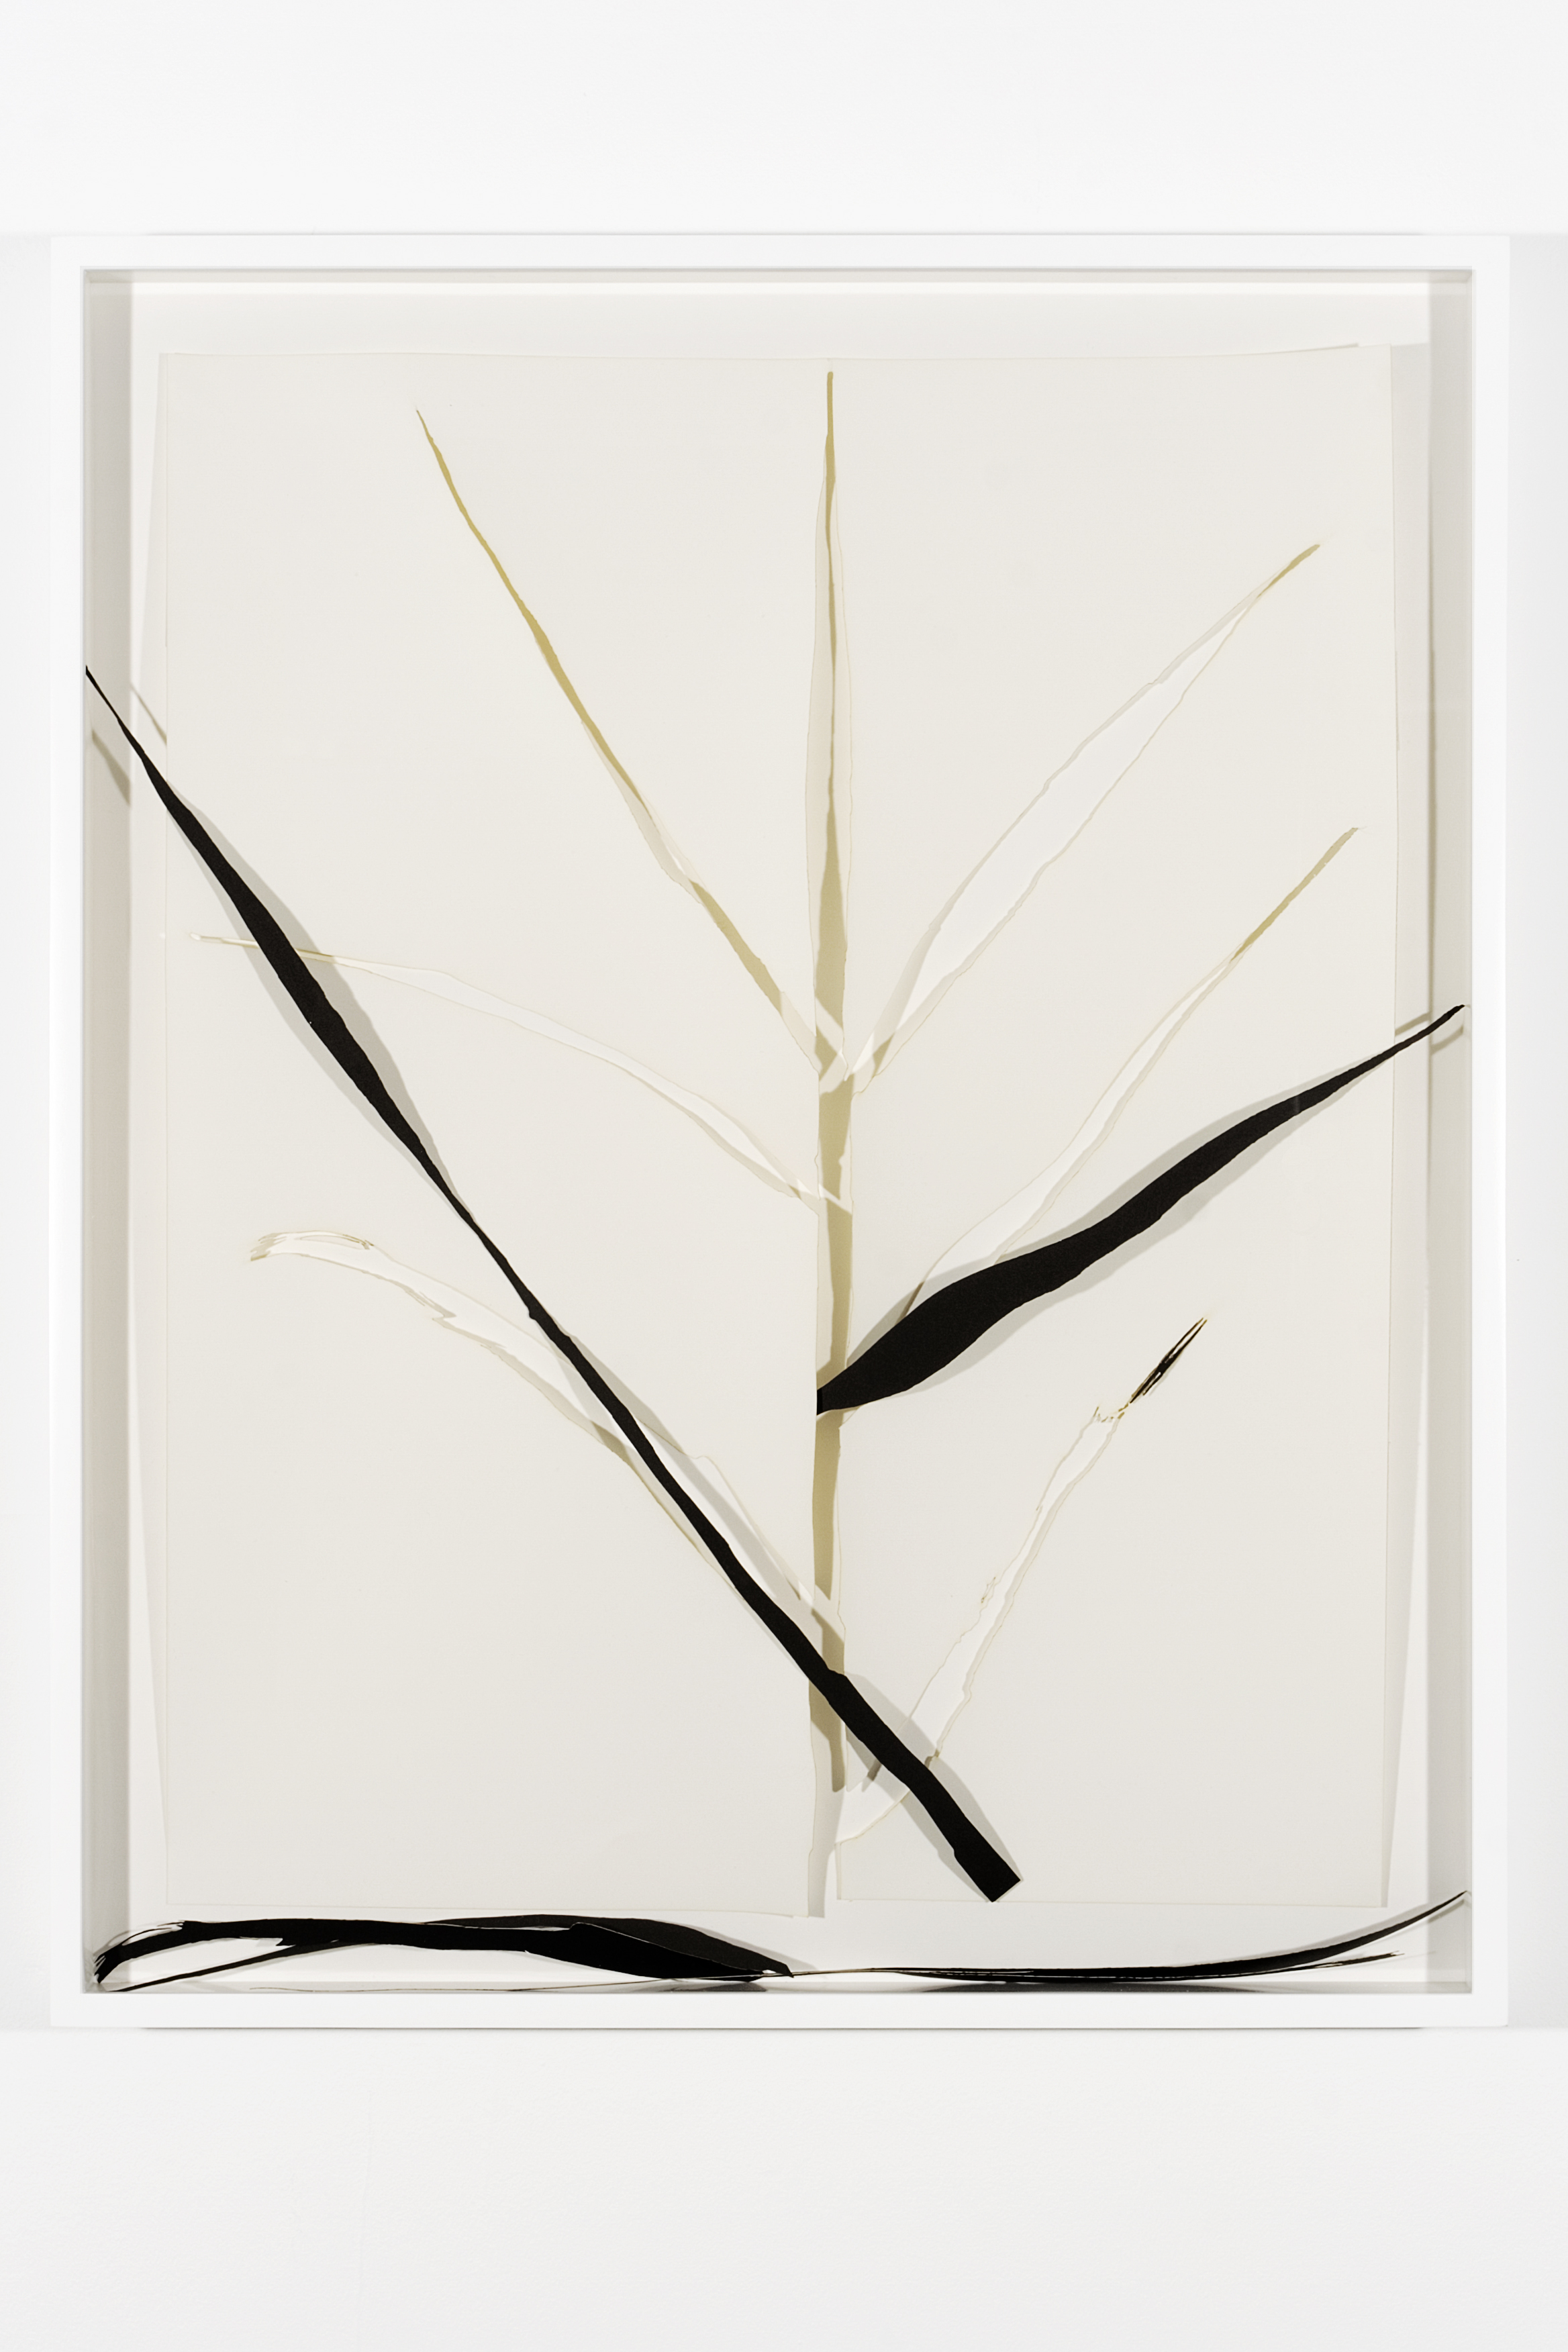 "Collapsed Drawing: ""Grass"" (Ellsworth Kelly), 2007 laser-cut paper and laser-cut archival digital print mounted on museum board 80,7 x 65,5 cm - 31 3/4 x 25 3/4 inches (framed)"